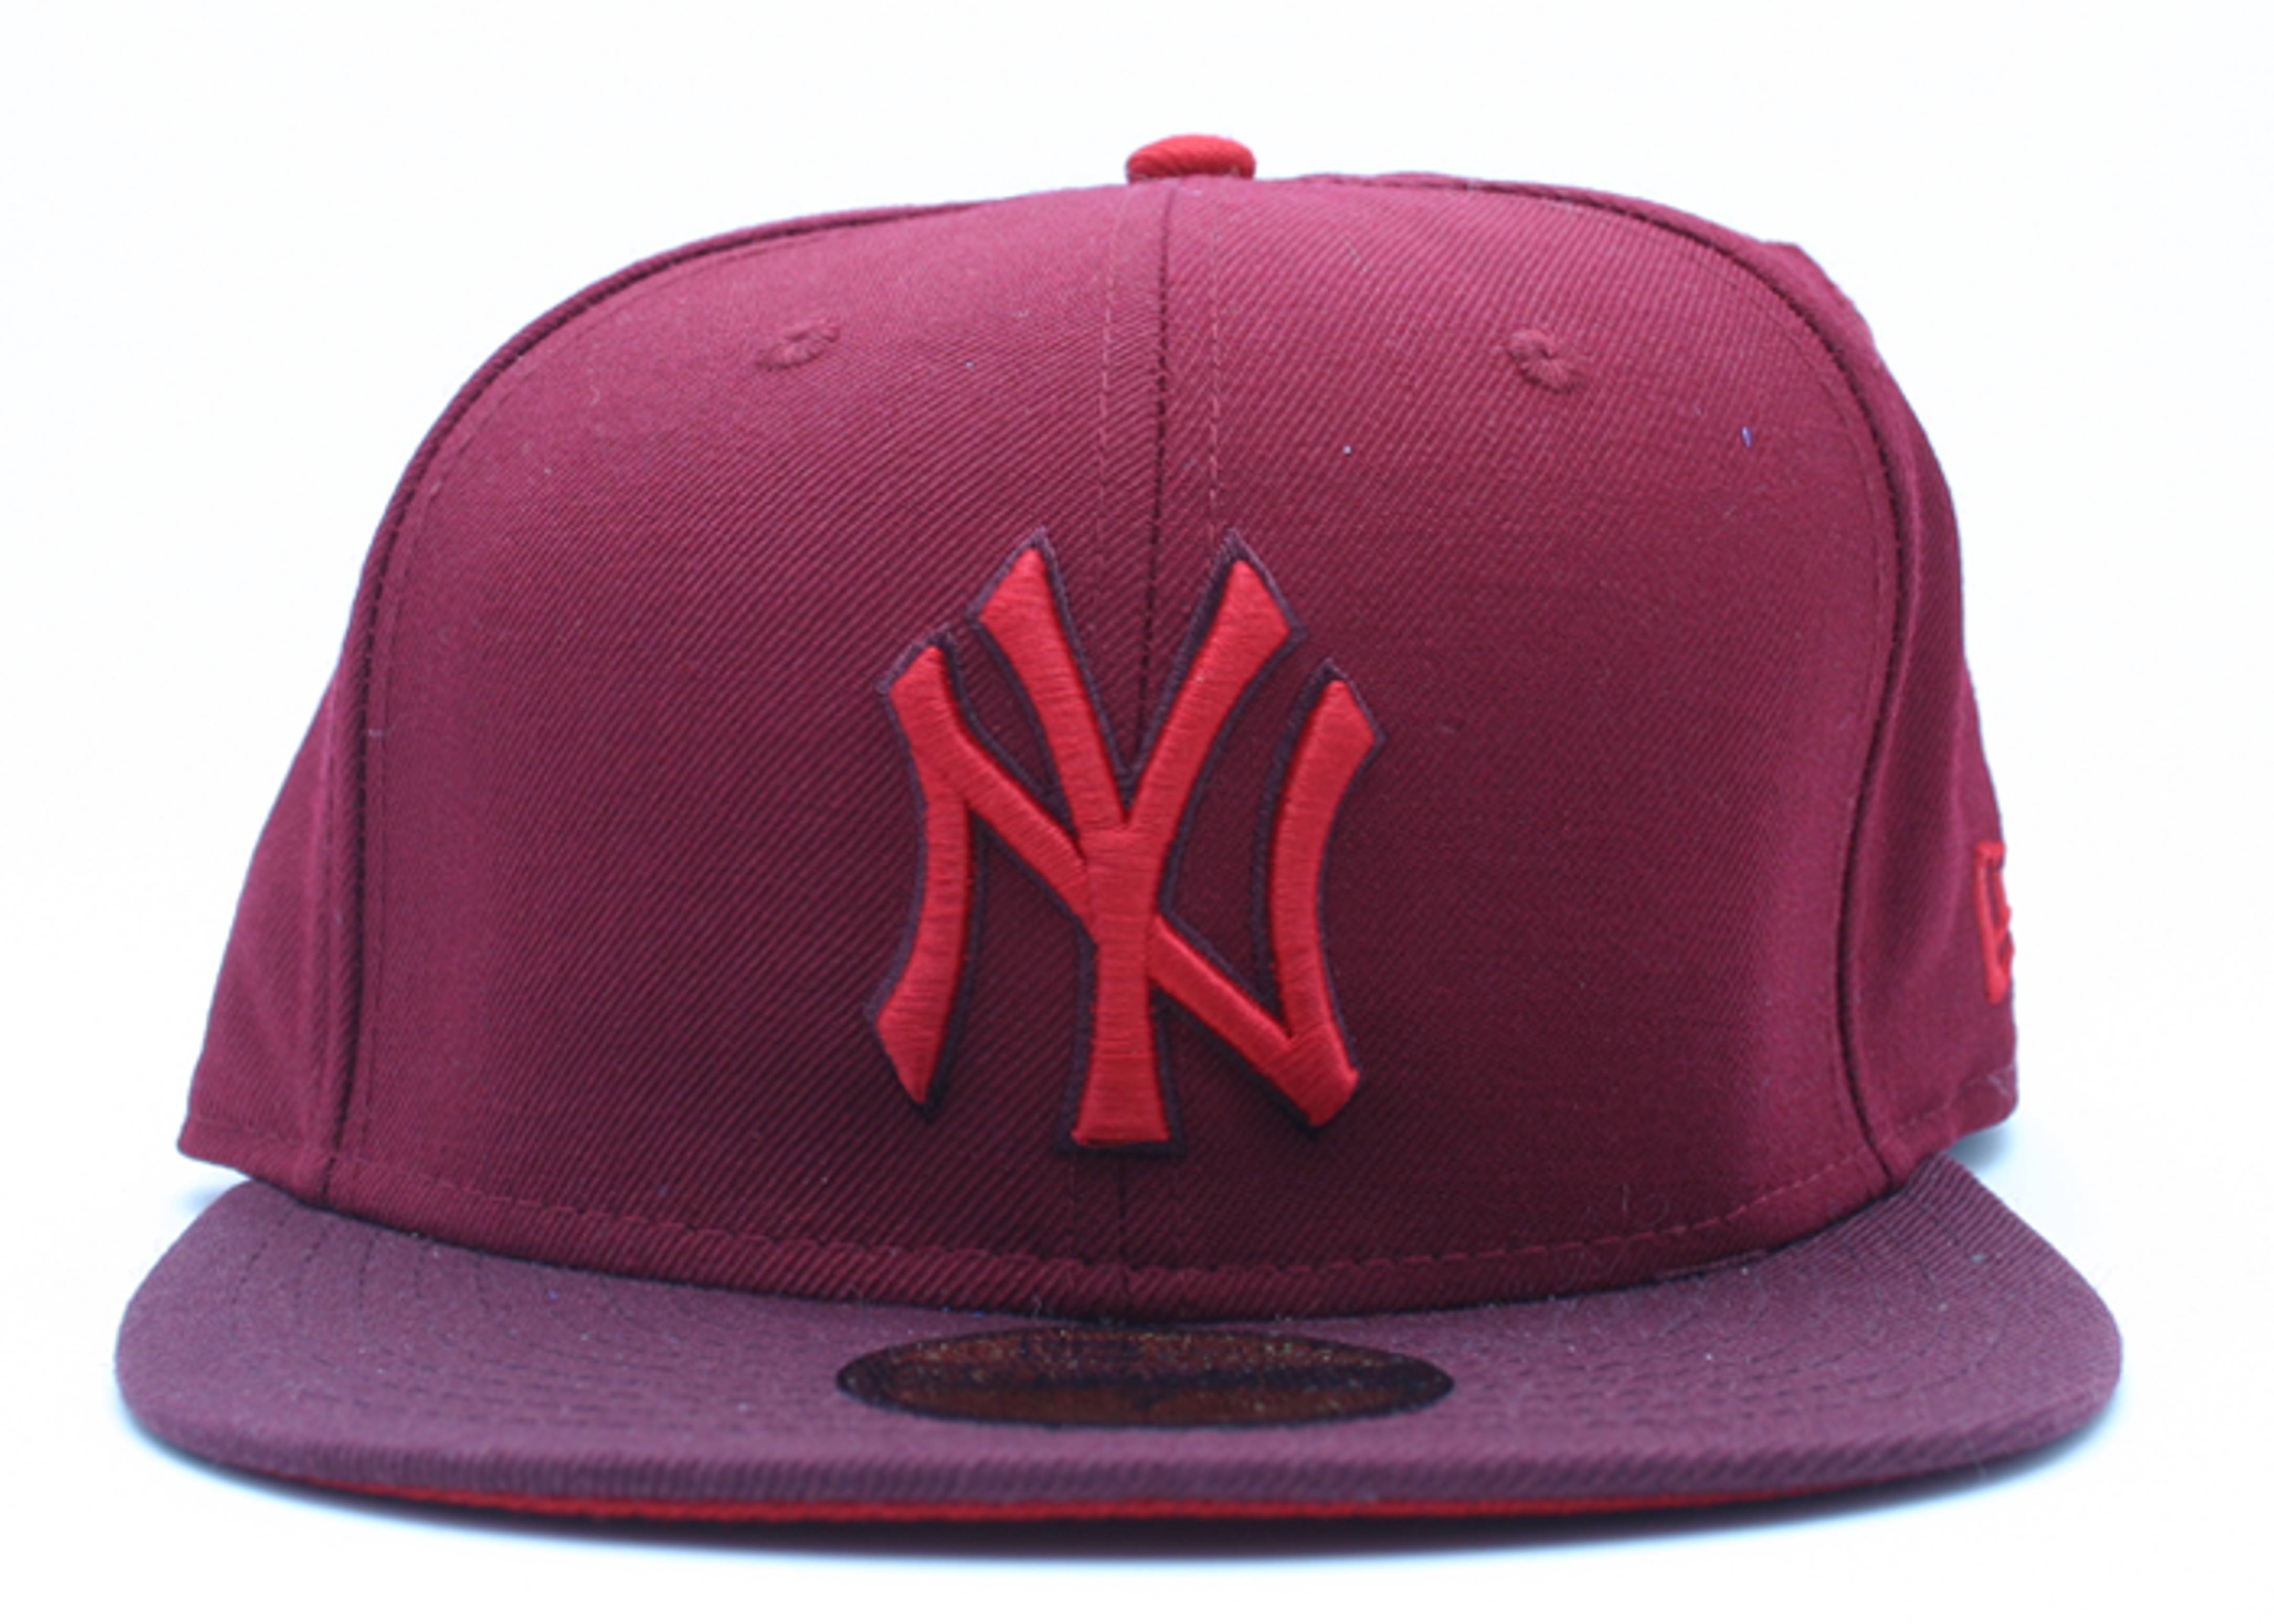 new york yankee fitted